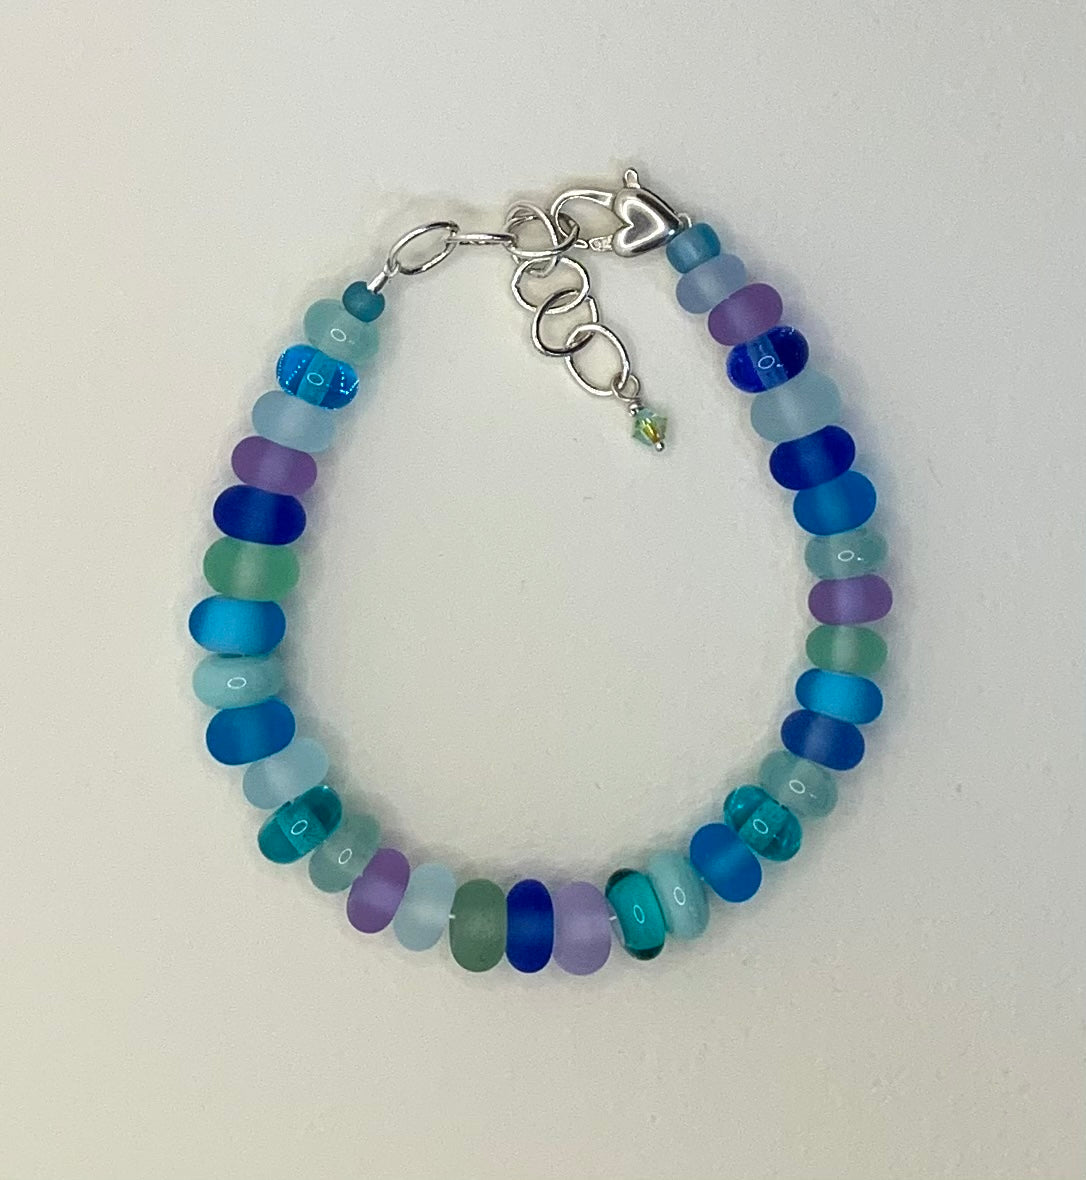 Bracelet (small etched light aqua, green, blue and lavender beads)